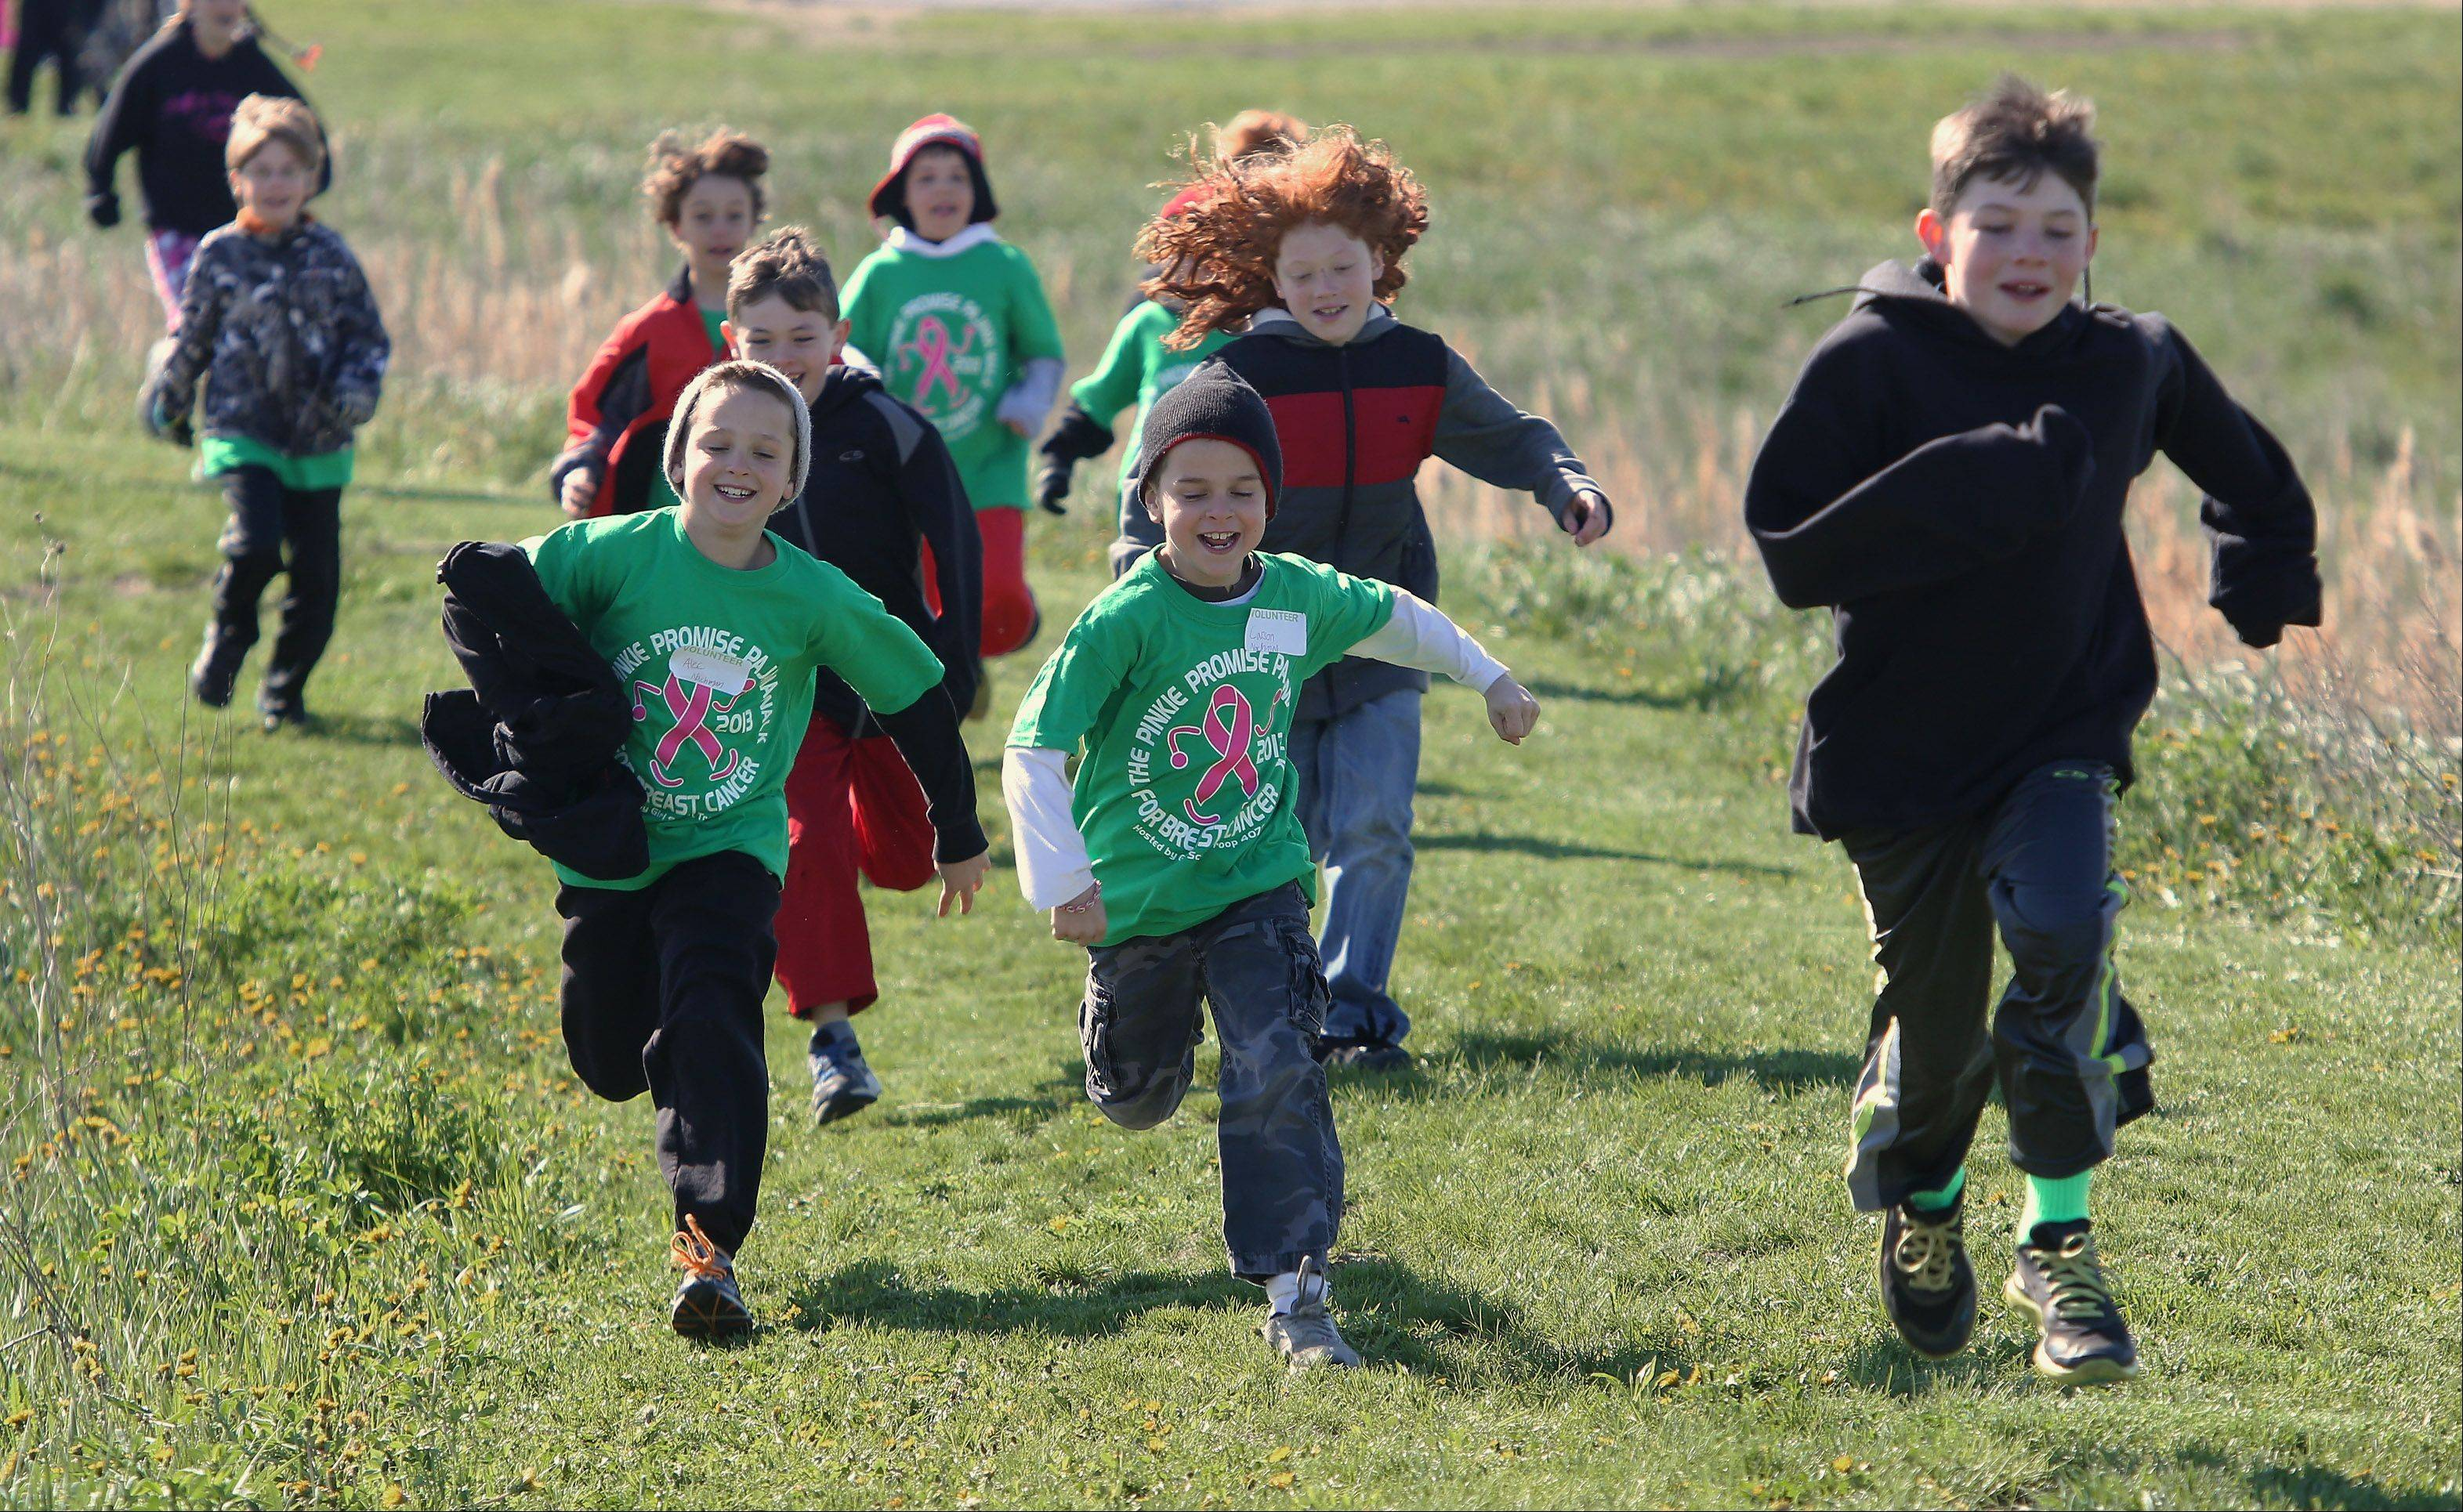 Children start running during the Second Annual Pinkie Promise Pajama Walk Sunday at Fremont Intermediate School in Mundelein. The walk was held to support breast cancer awareness in honor of Juliette Lowe, the founder of the Girl Scouts, who died of breast cancer.